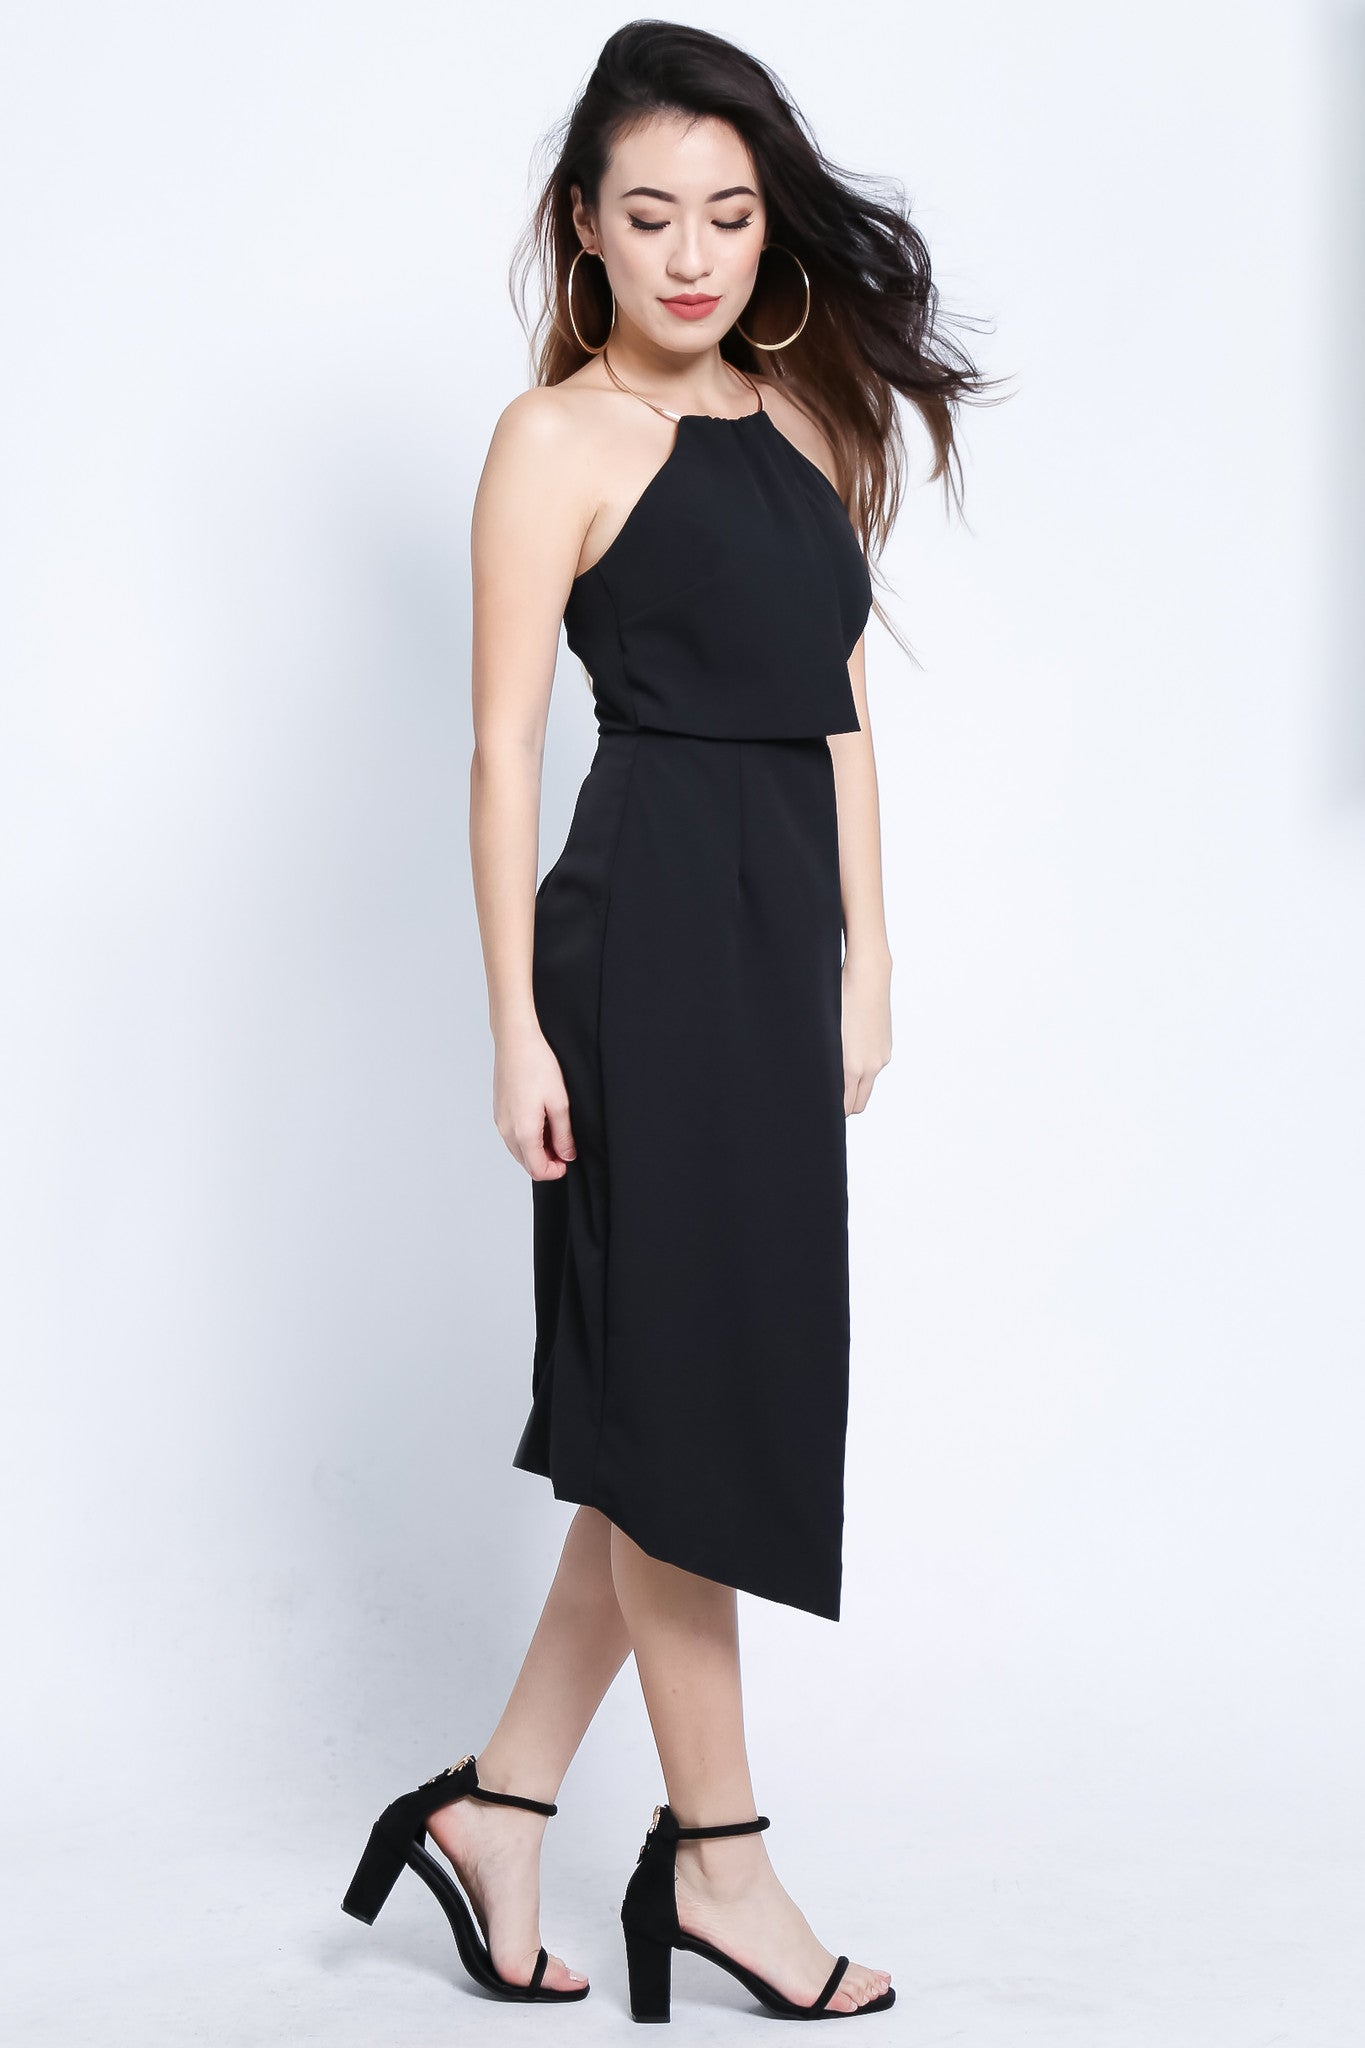 *TOPAZ* (PREMIUM) TINSEL RING MIDI DRESS IN BLACK - TOPAZETTE